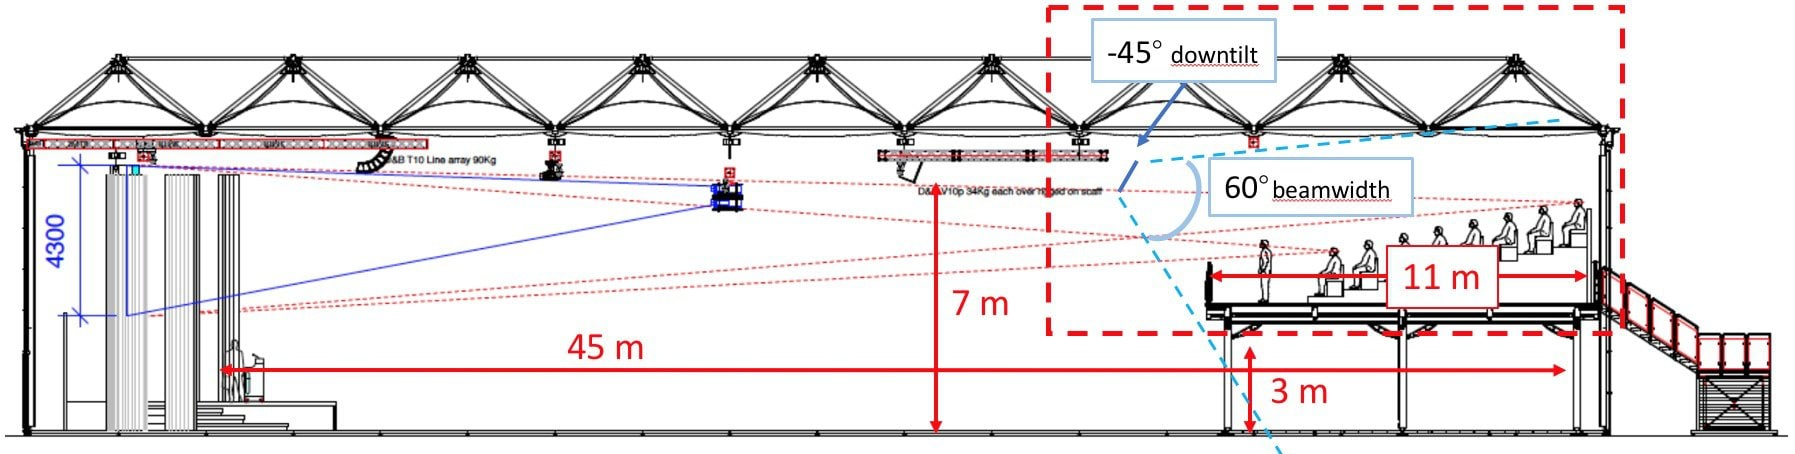 Wireless High Client Density Design Guide Cisco Aaa C Wire Color Diagram Typical Single Line Unit Figure 22 Side View Of Coverage For Balcony